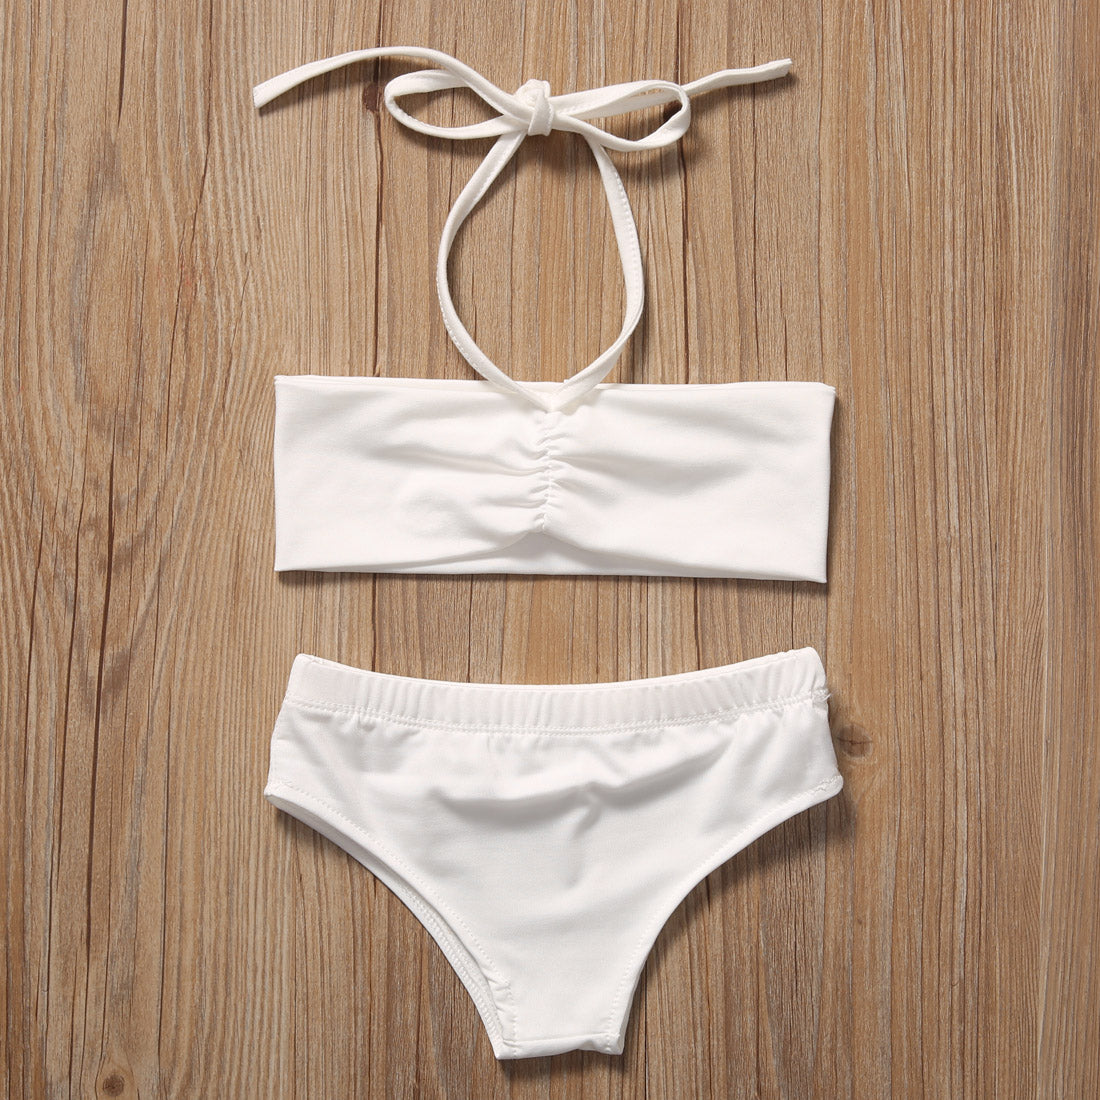 Girls Bikini and Cover-up 3 pc. Set (White or Black)